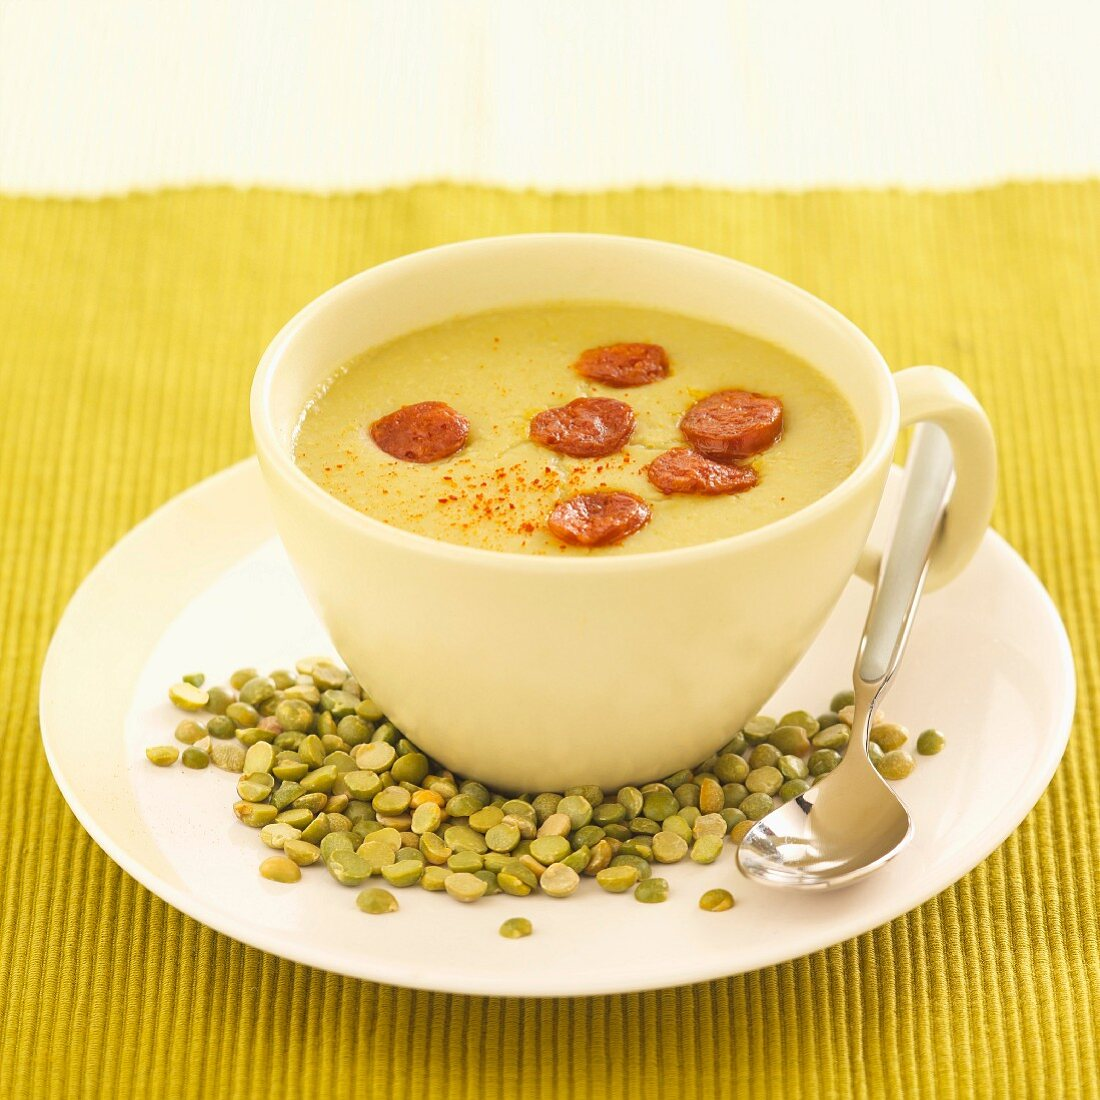 Cream of pea soup with chorizo